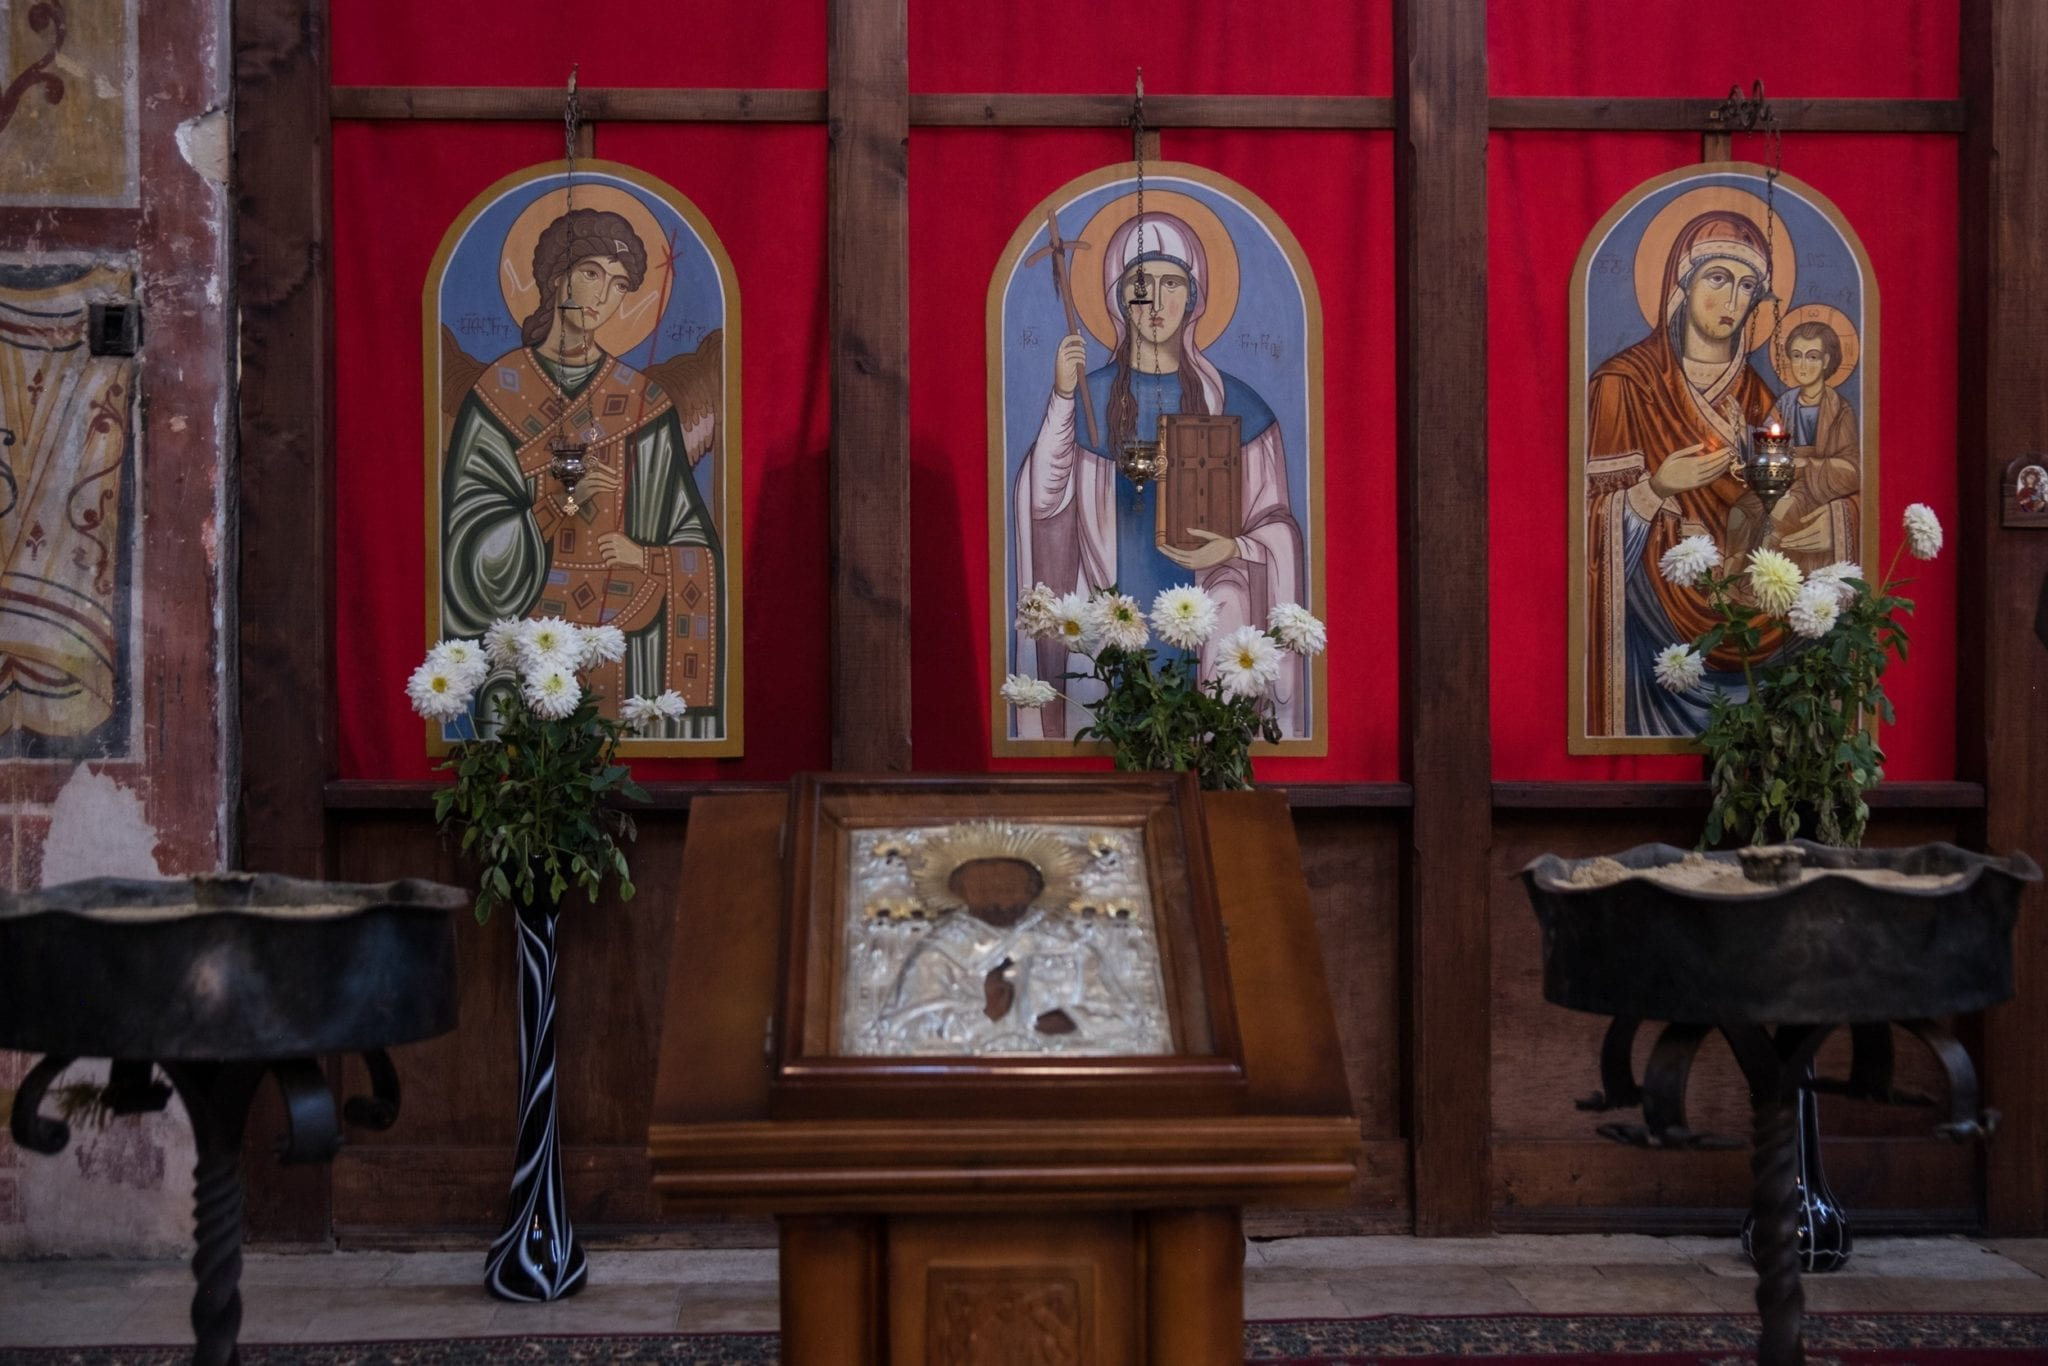 The altar at Gelati Monastery, with pictures of saints in front of blood-colored paneling.